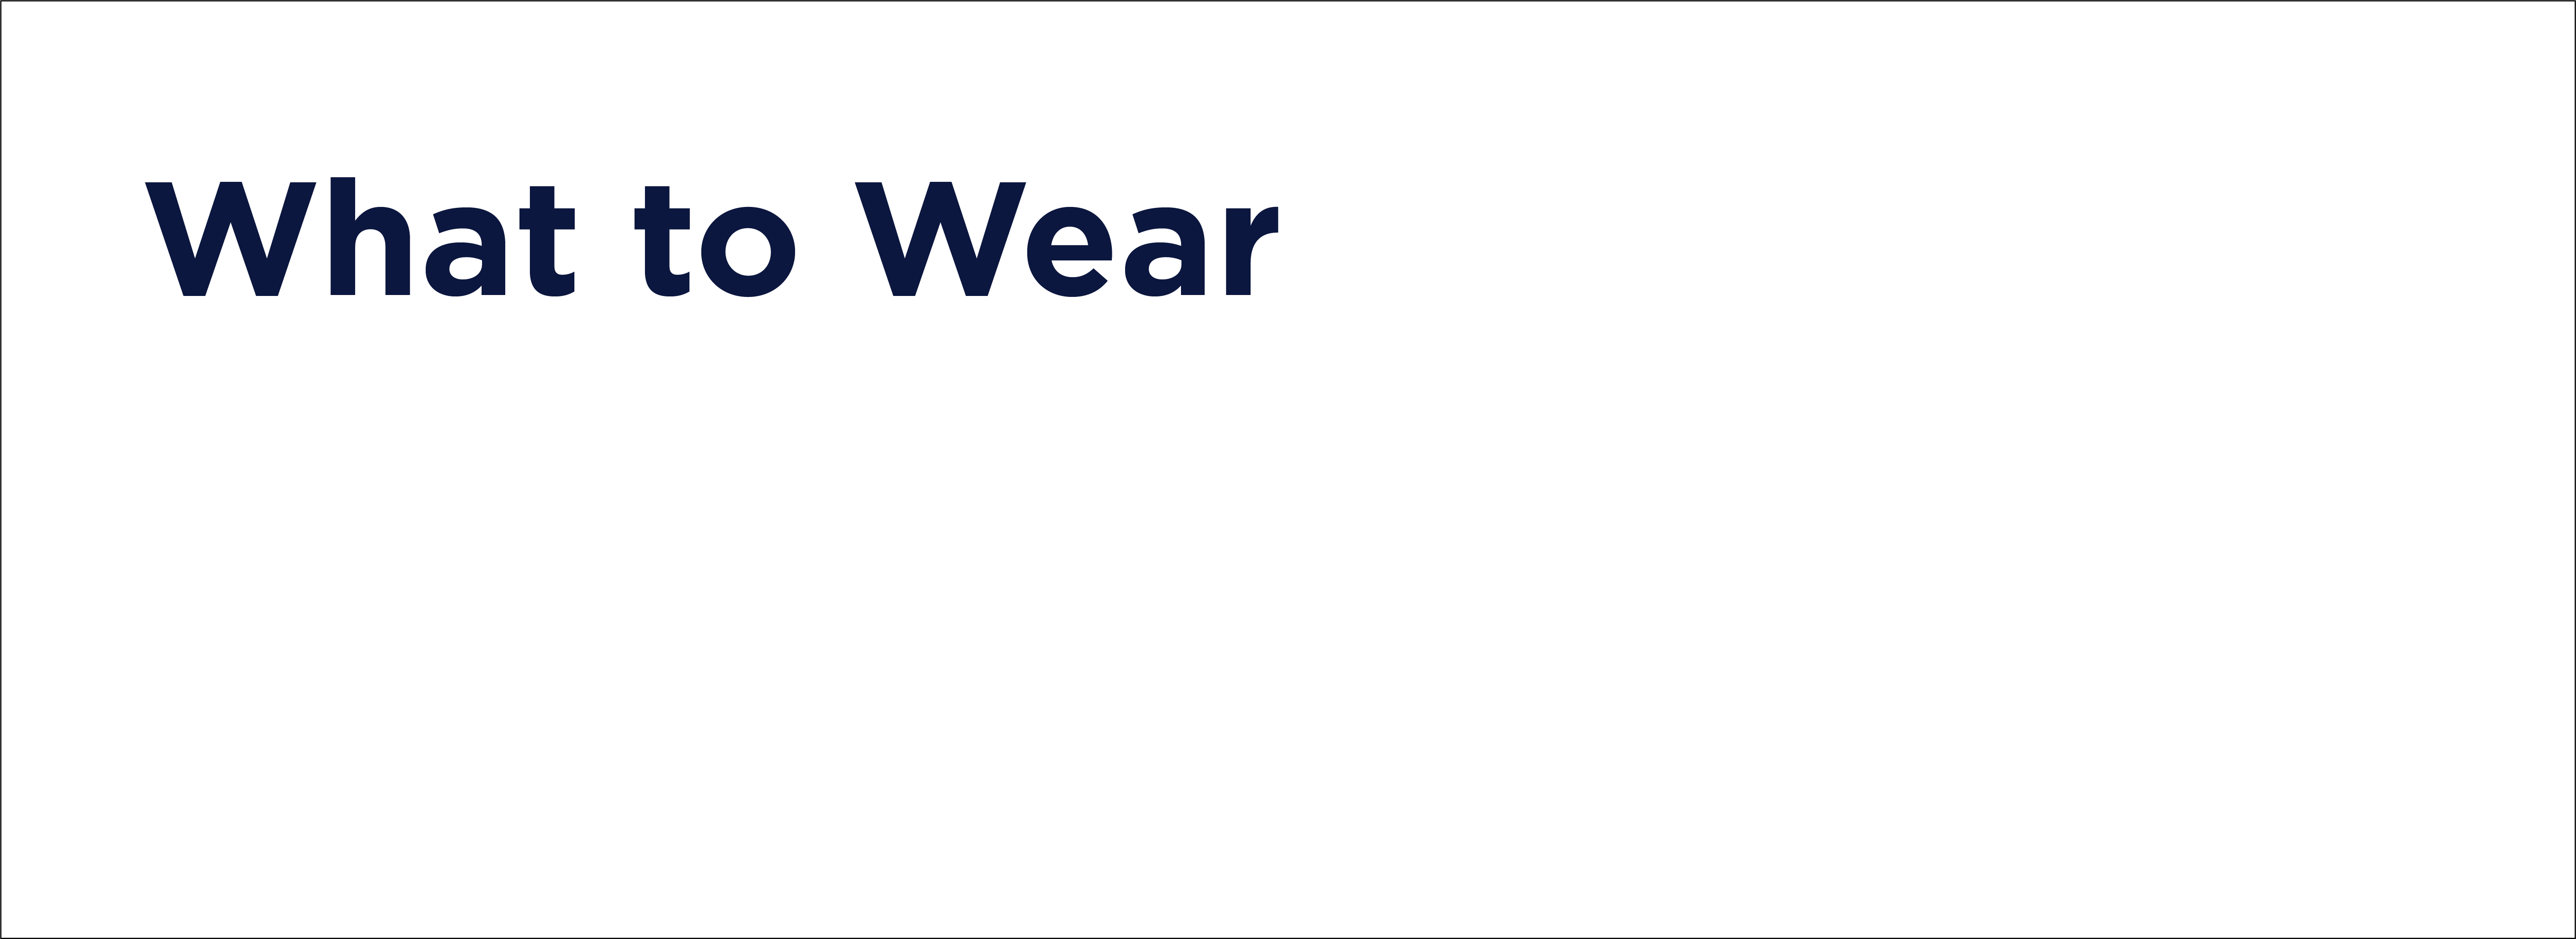 what to wear text